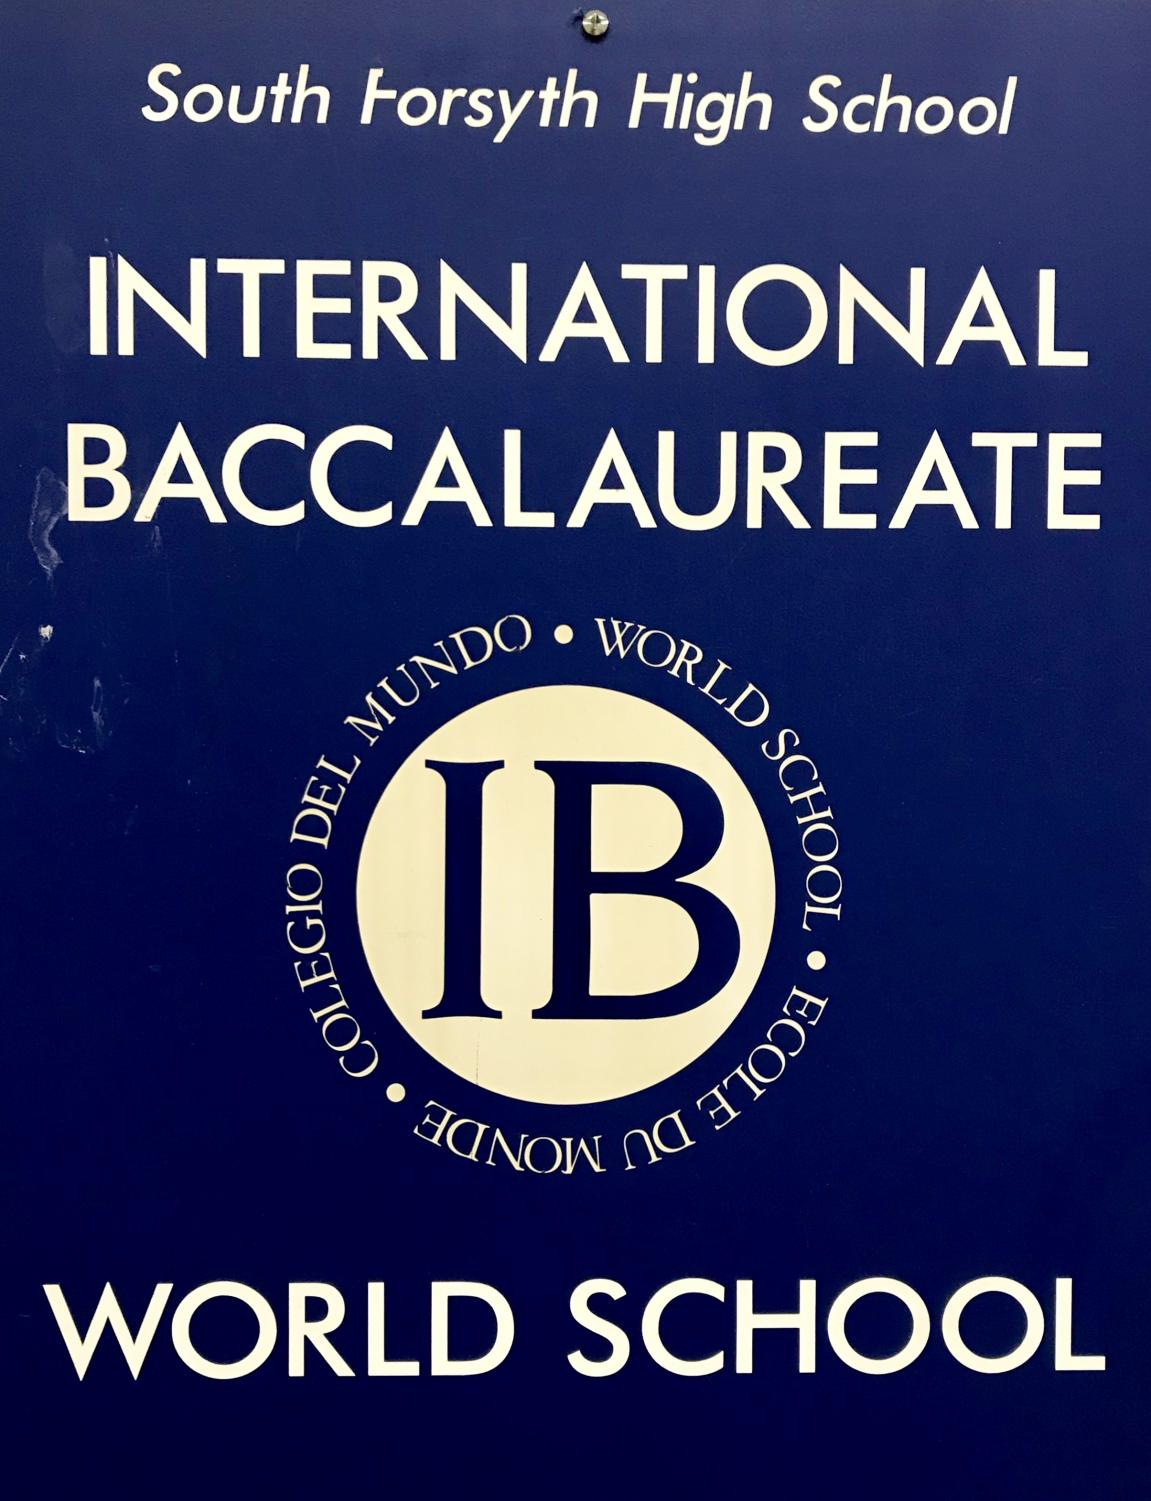 The International Baccalaureate Program has two different pathways, DP and CP, which it offers to students who wish to pursue rigorous course work. Mr. Denney keeps this IB placard in his office.